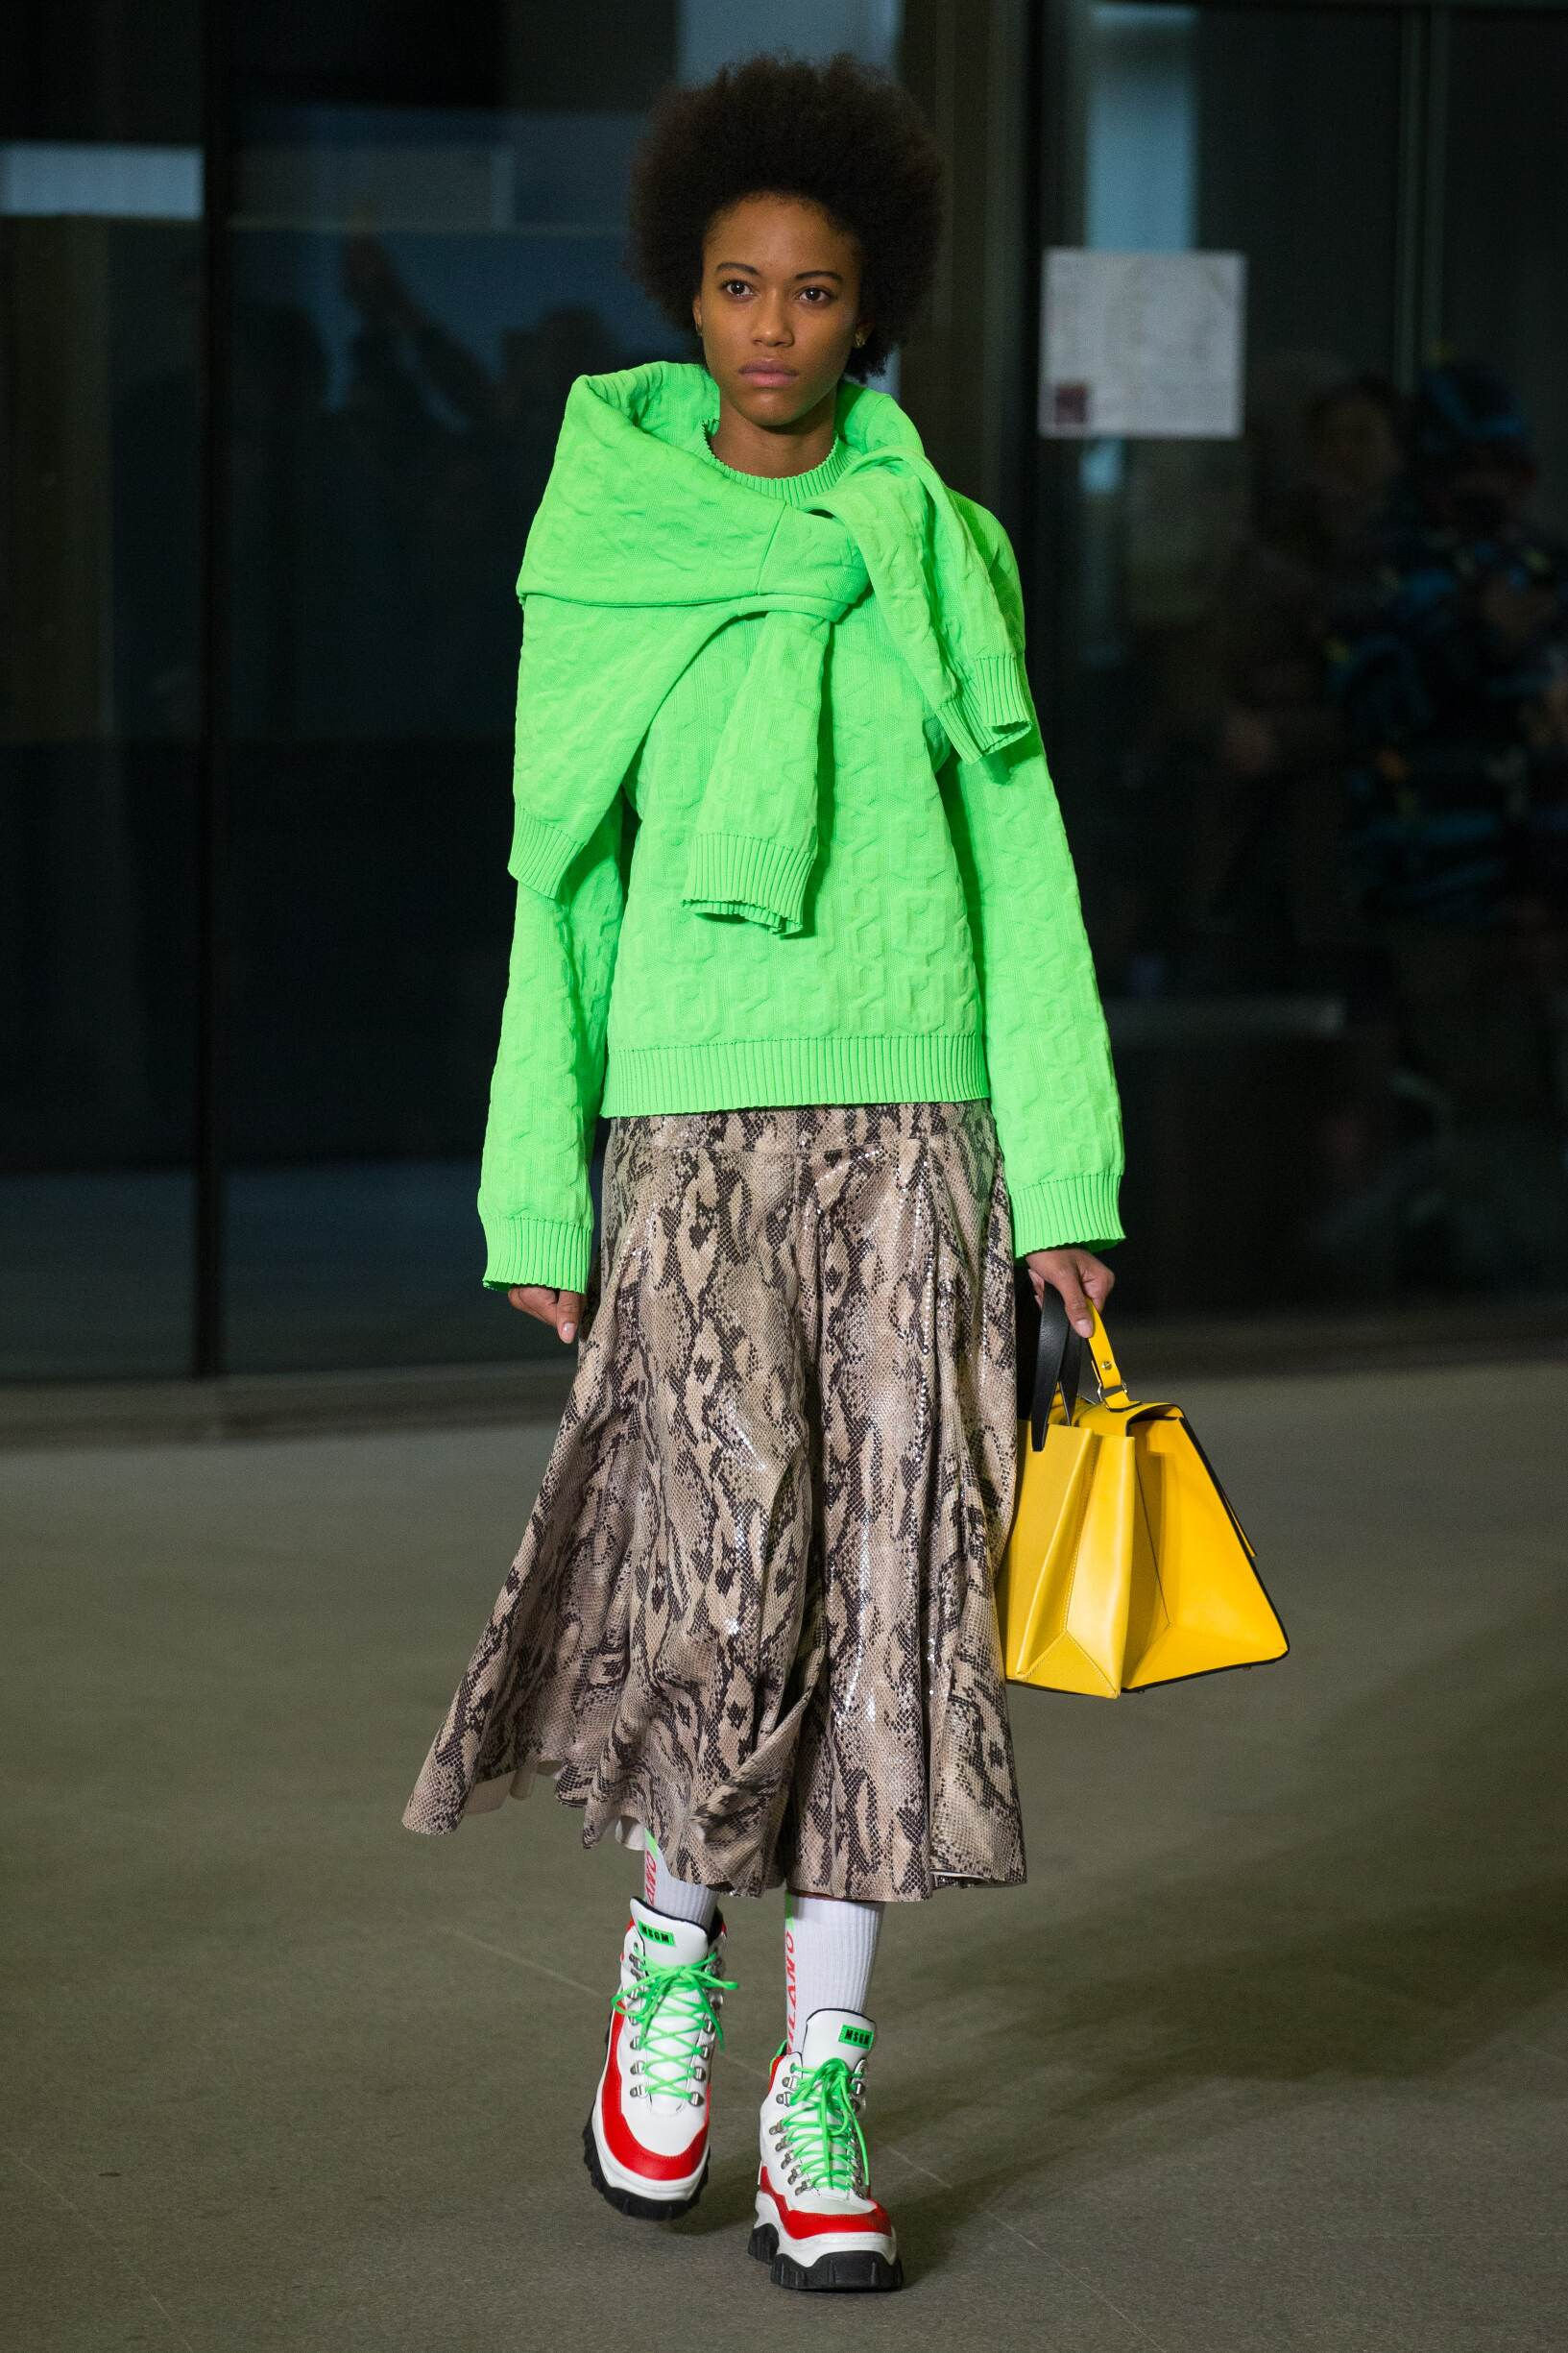 MSGM FALL WINTER 2018 WOMEN'S COLLECTION | The Skinny Beep